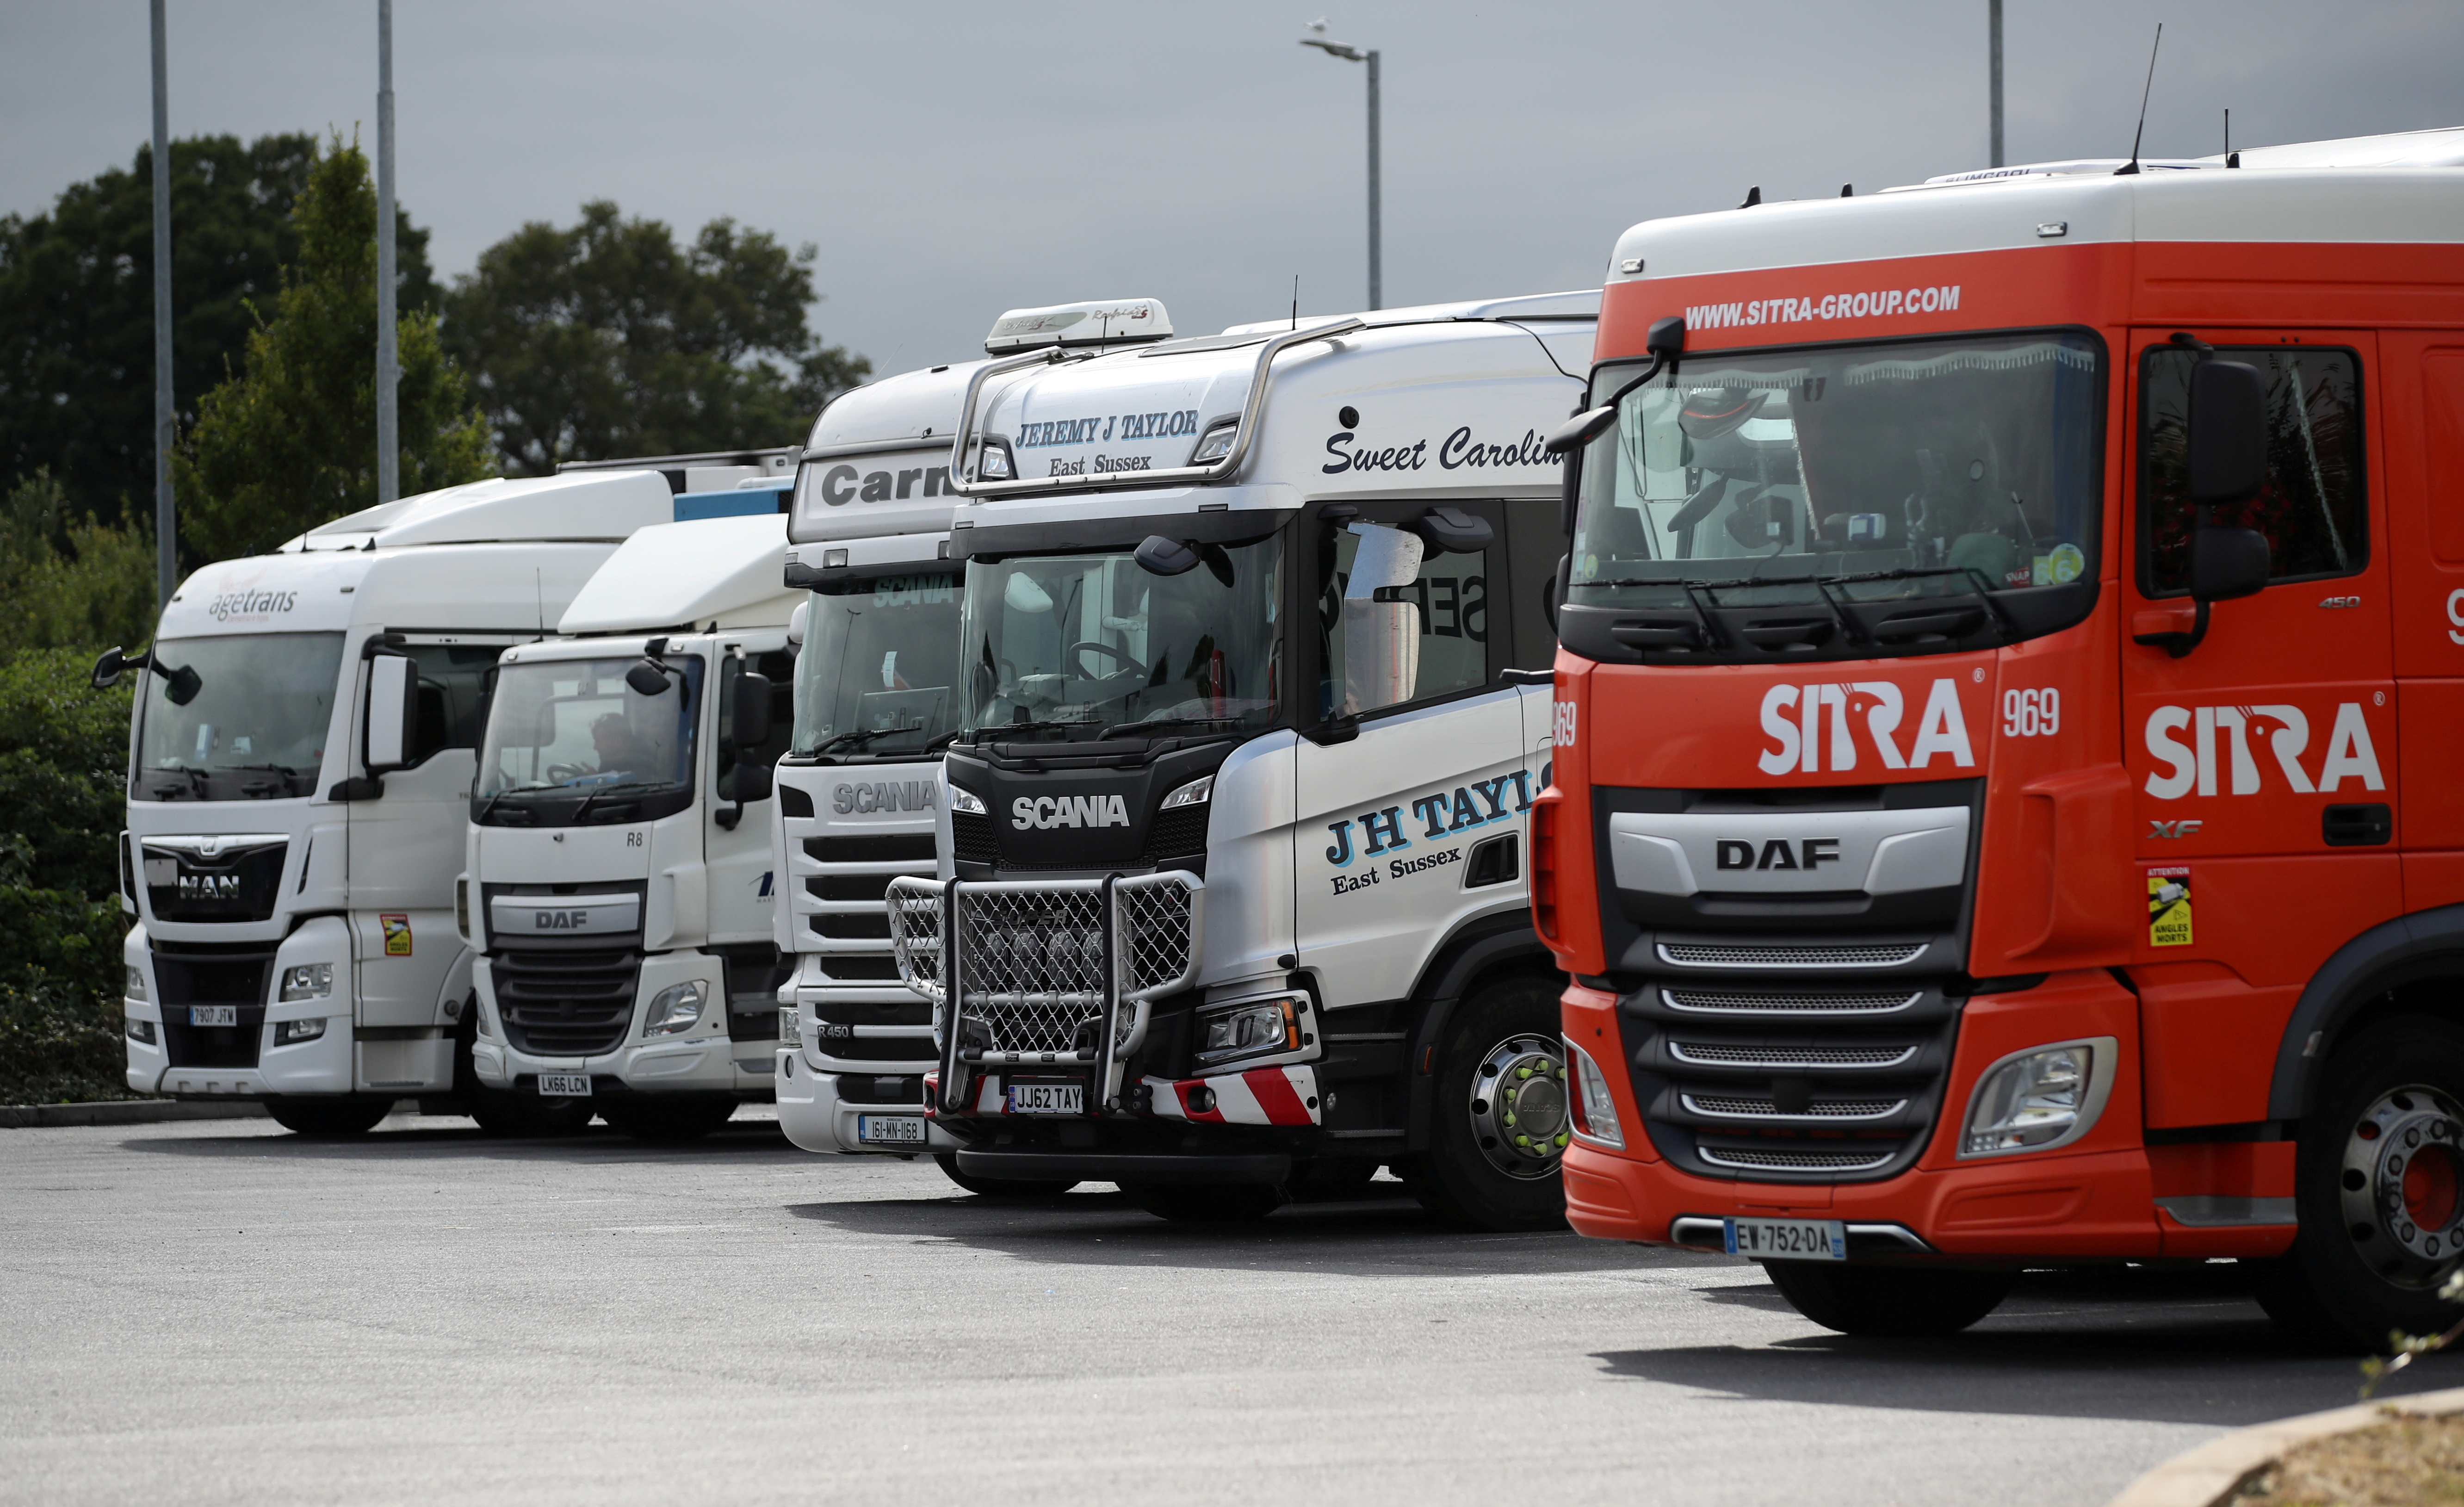 Lorries are seen at an HGV parking, at Cobham services on the M25 motorway, Cobham, Britain, August 31, 2021. REUTERS/Peter Cziborra